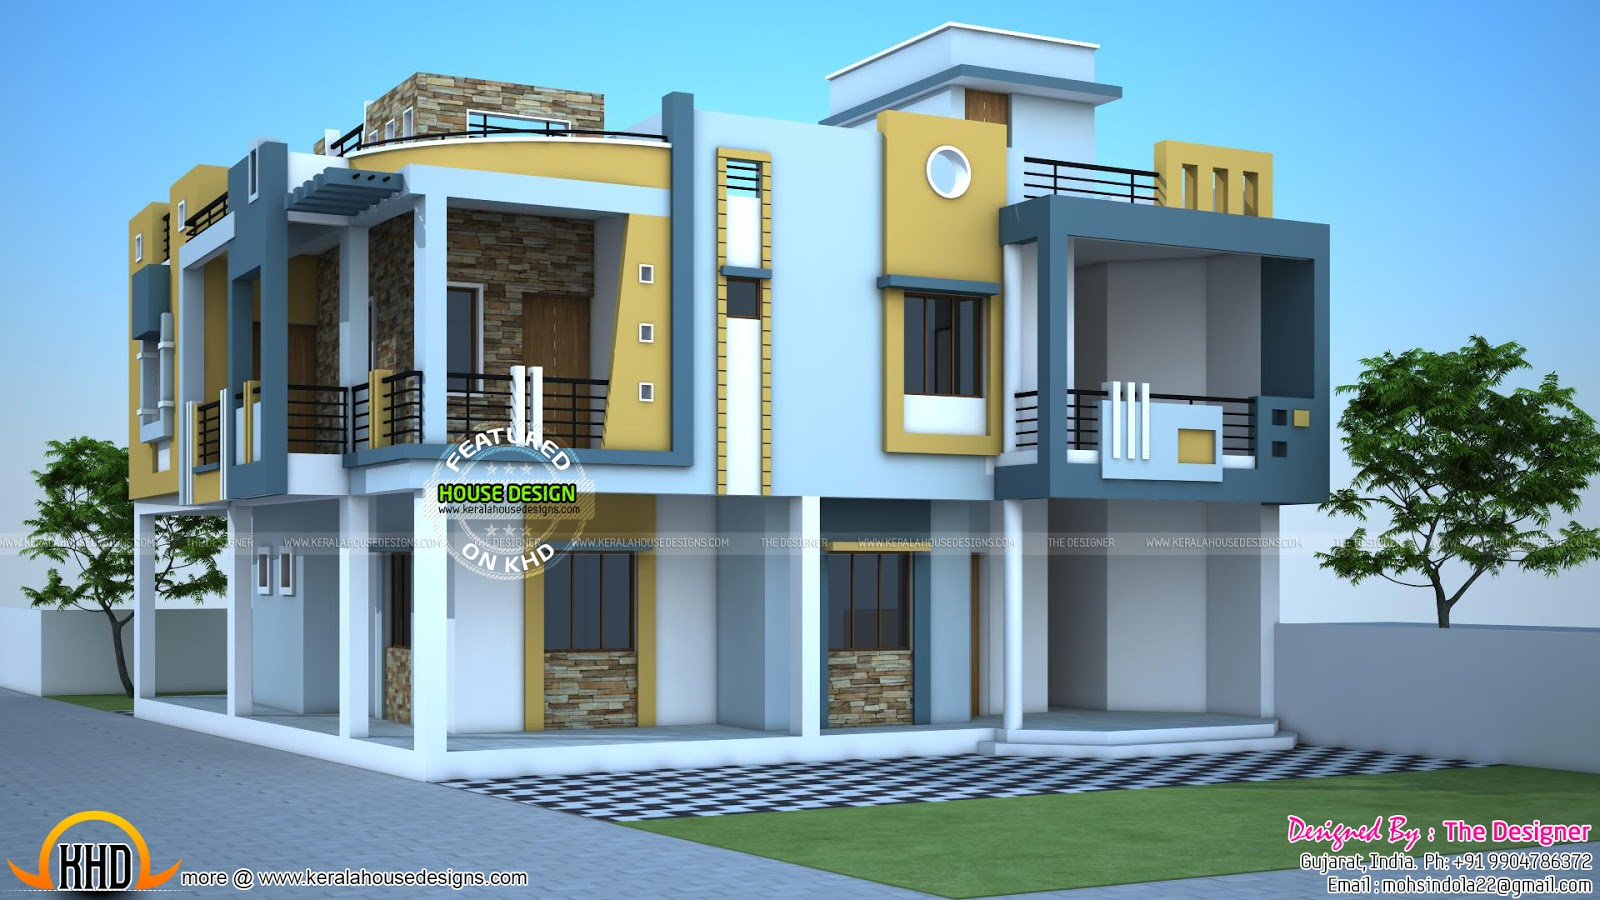 Modern duplex house in india kerala home design and for Design duplex house architecture india